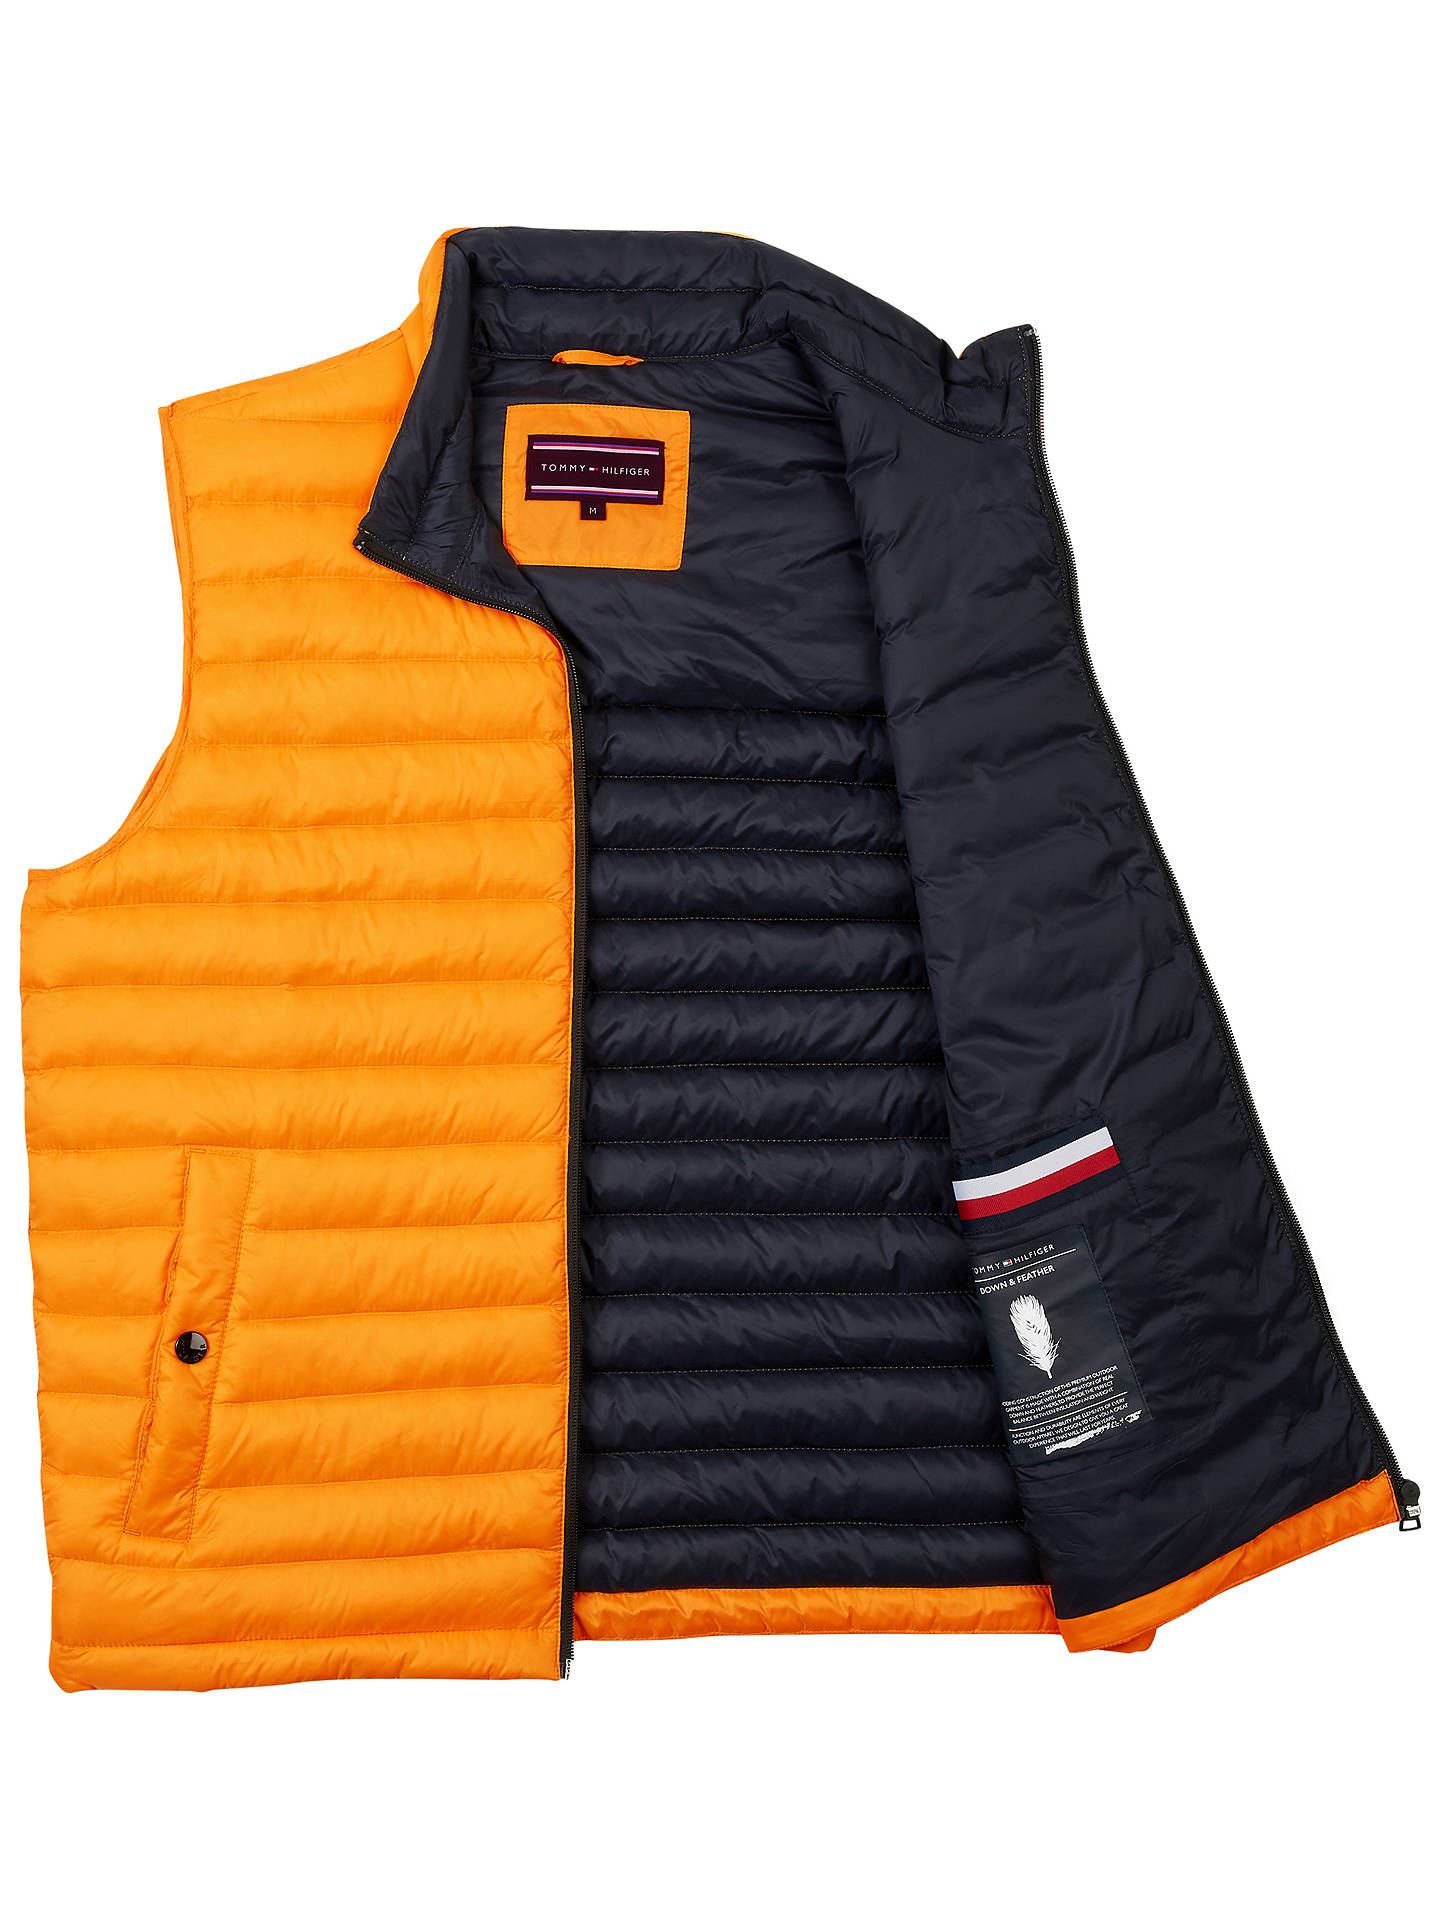 be4cd96f7 Tommy Hilfiger Lightweight Packable Down Vest, Yellow at John Lewis ...